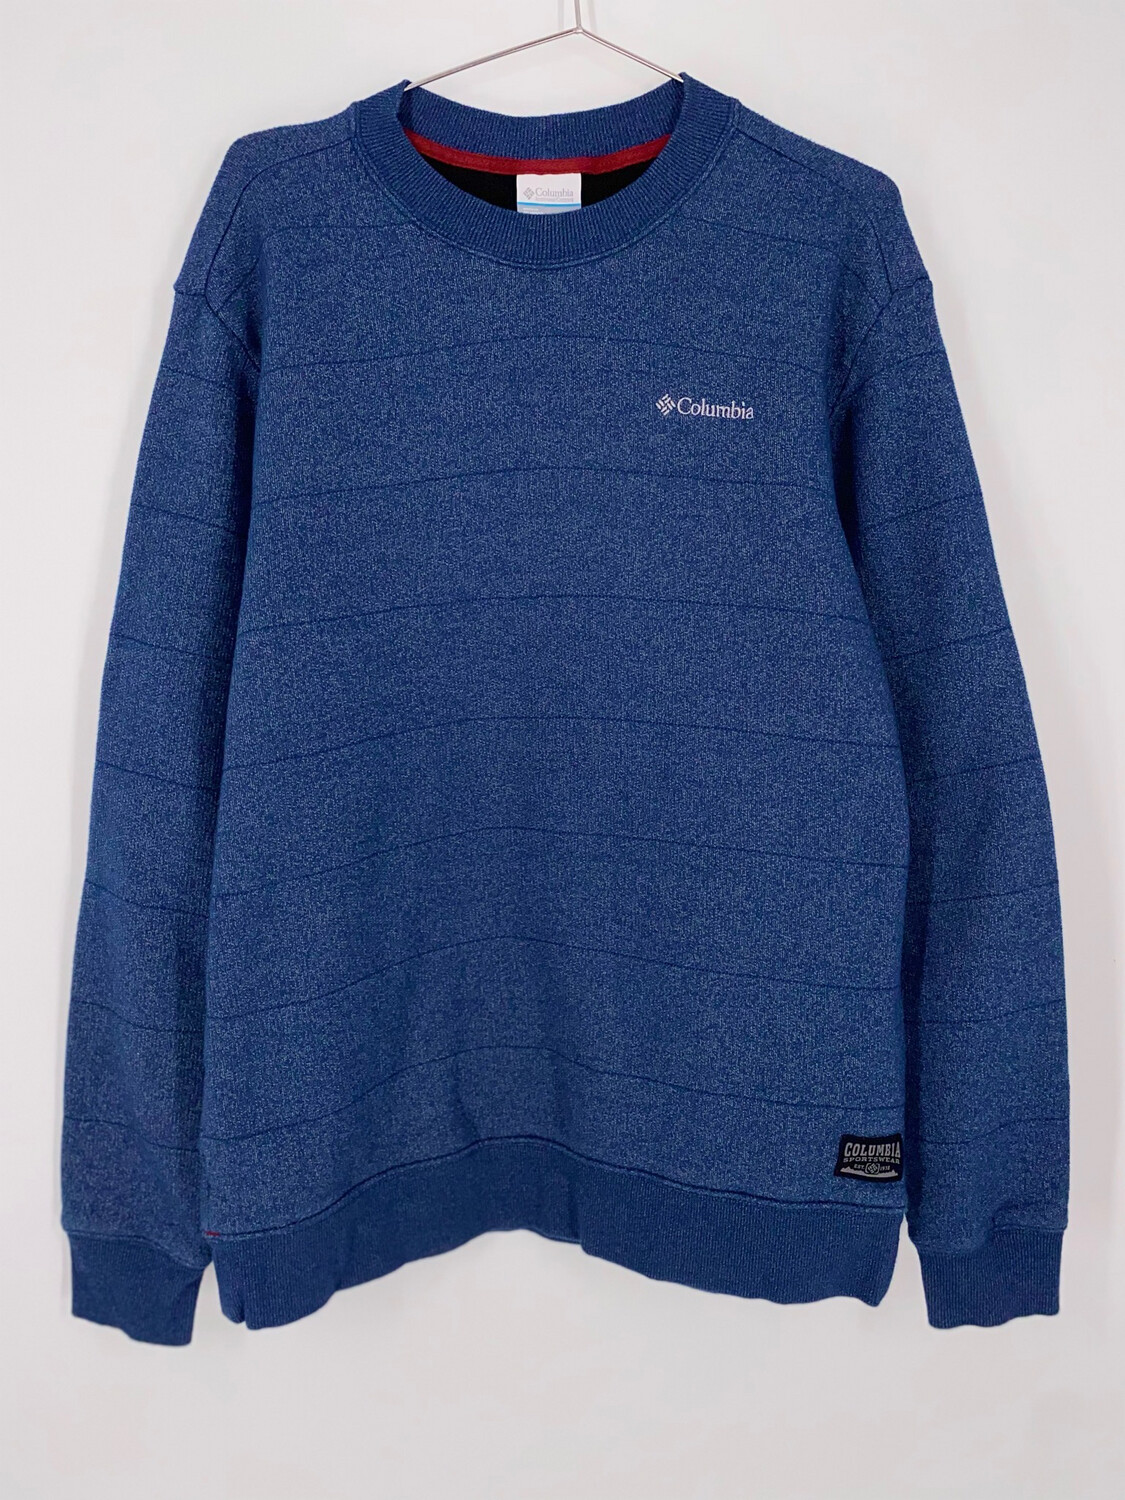 Columbia Embroidered Crewneck Size L